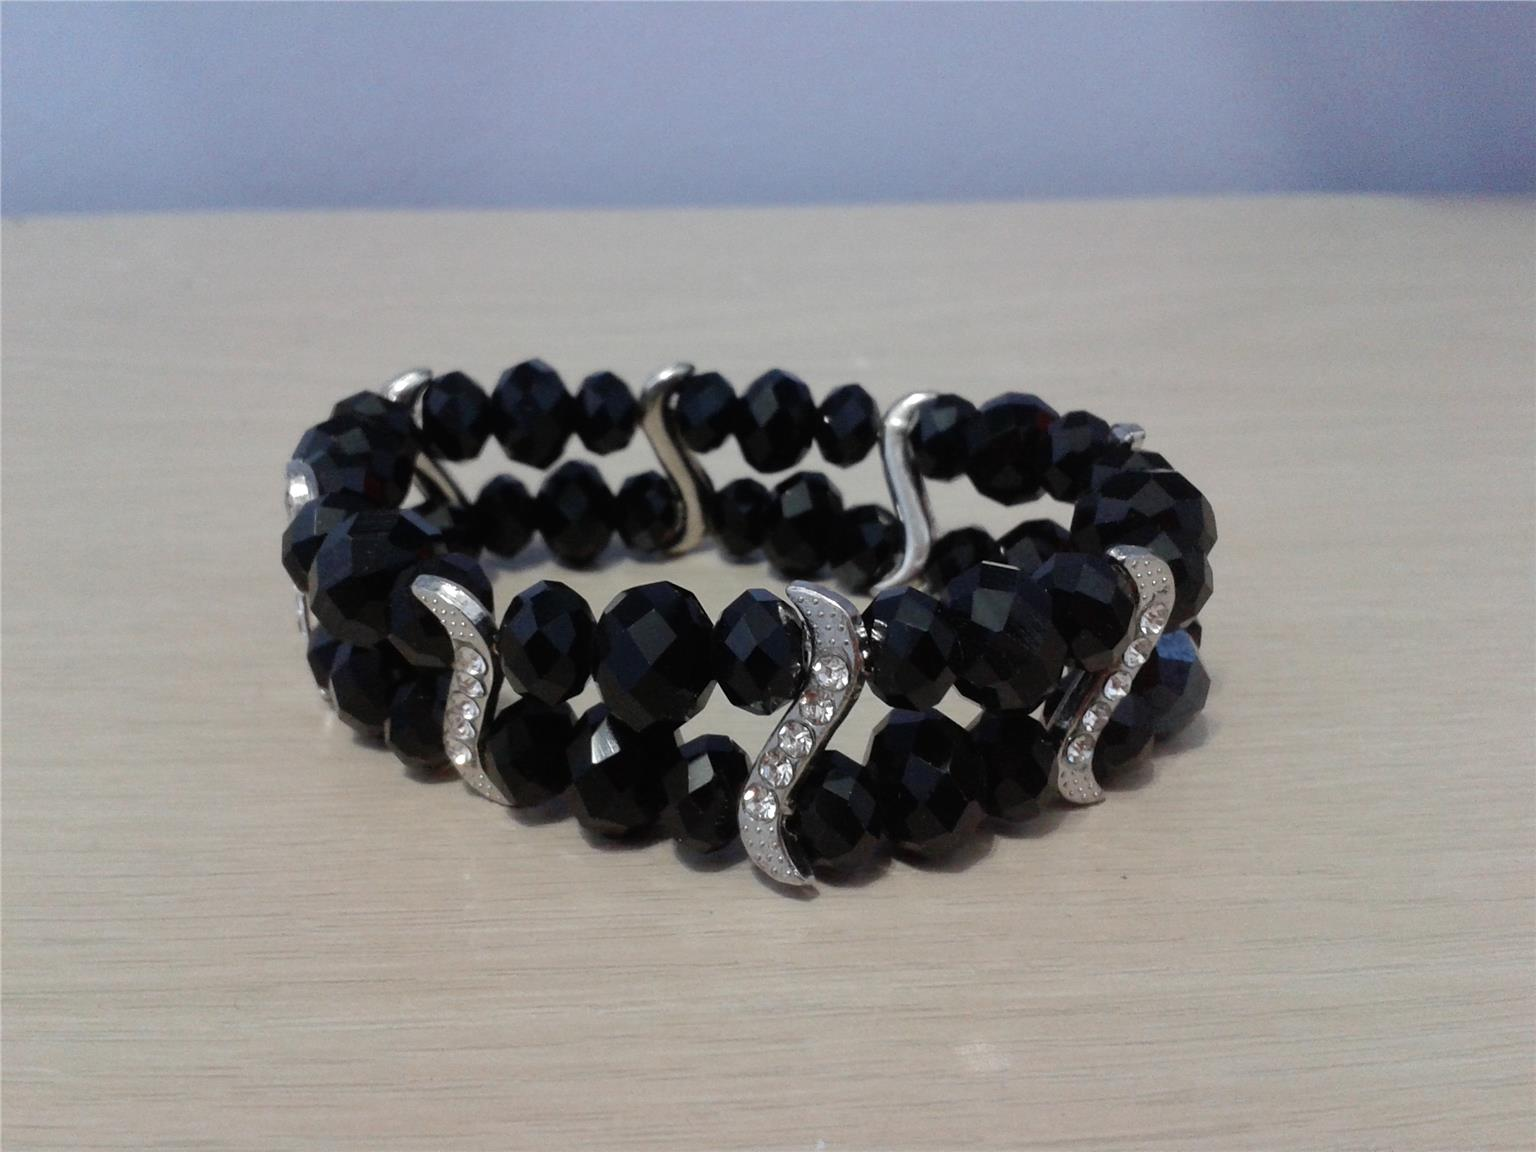 BRACELET WITH RHINESTONE BLACK COLOUR